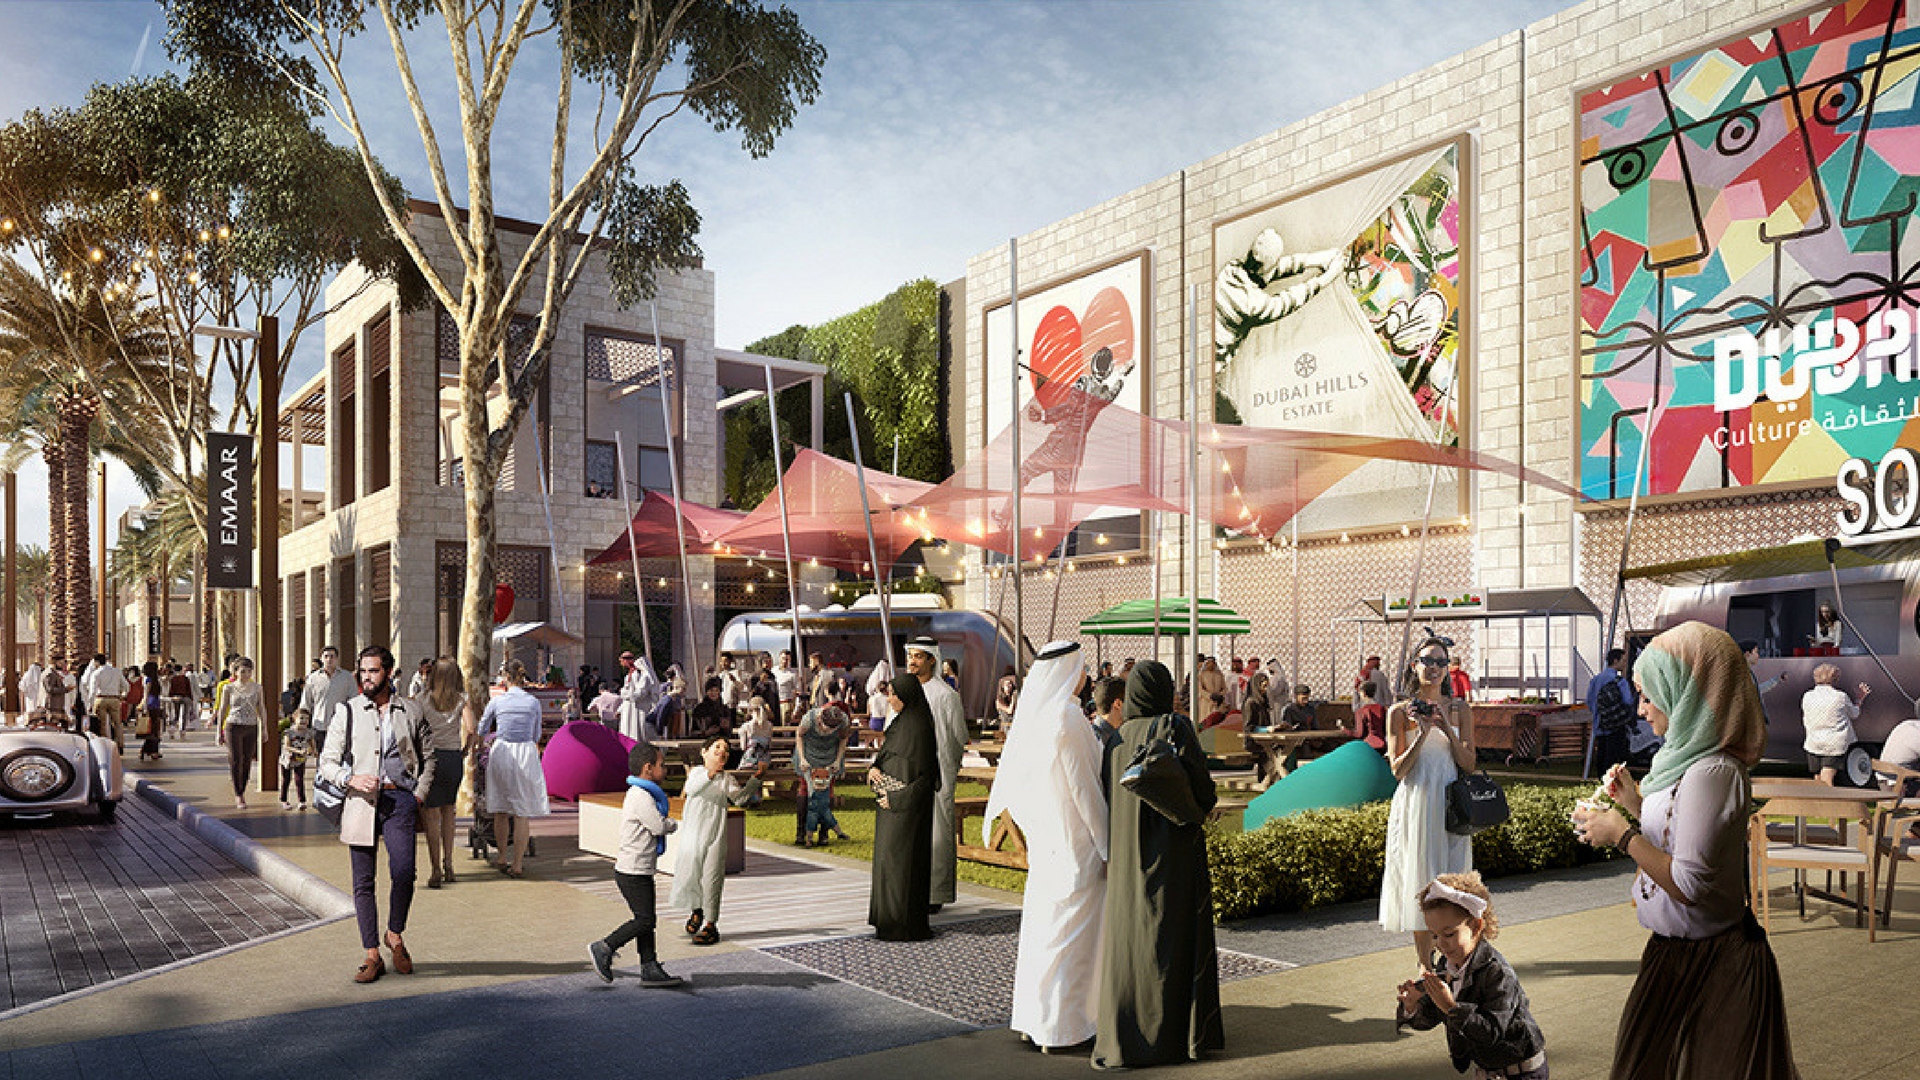 The exterior of the new Dubai Hills Mall.